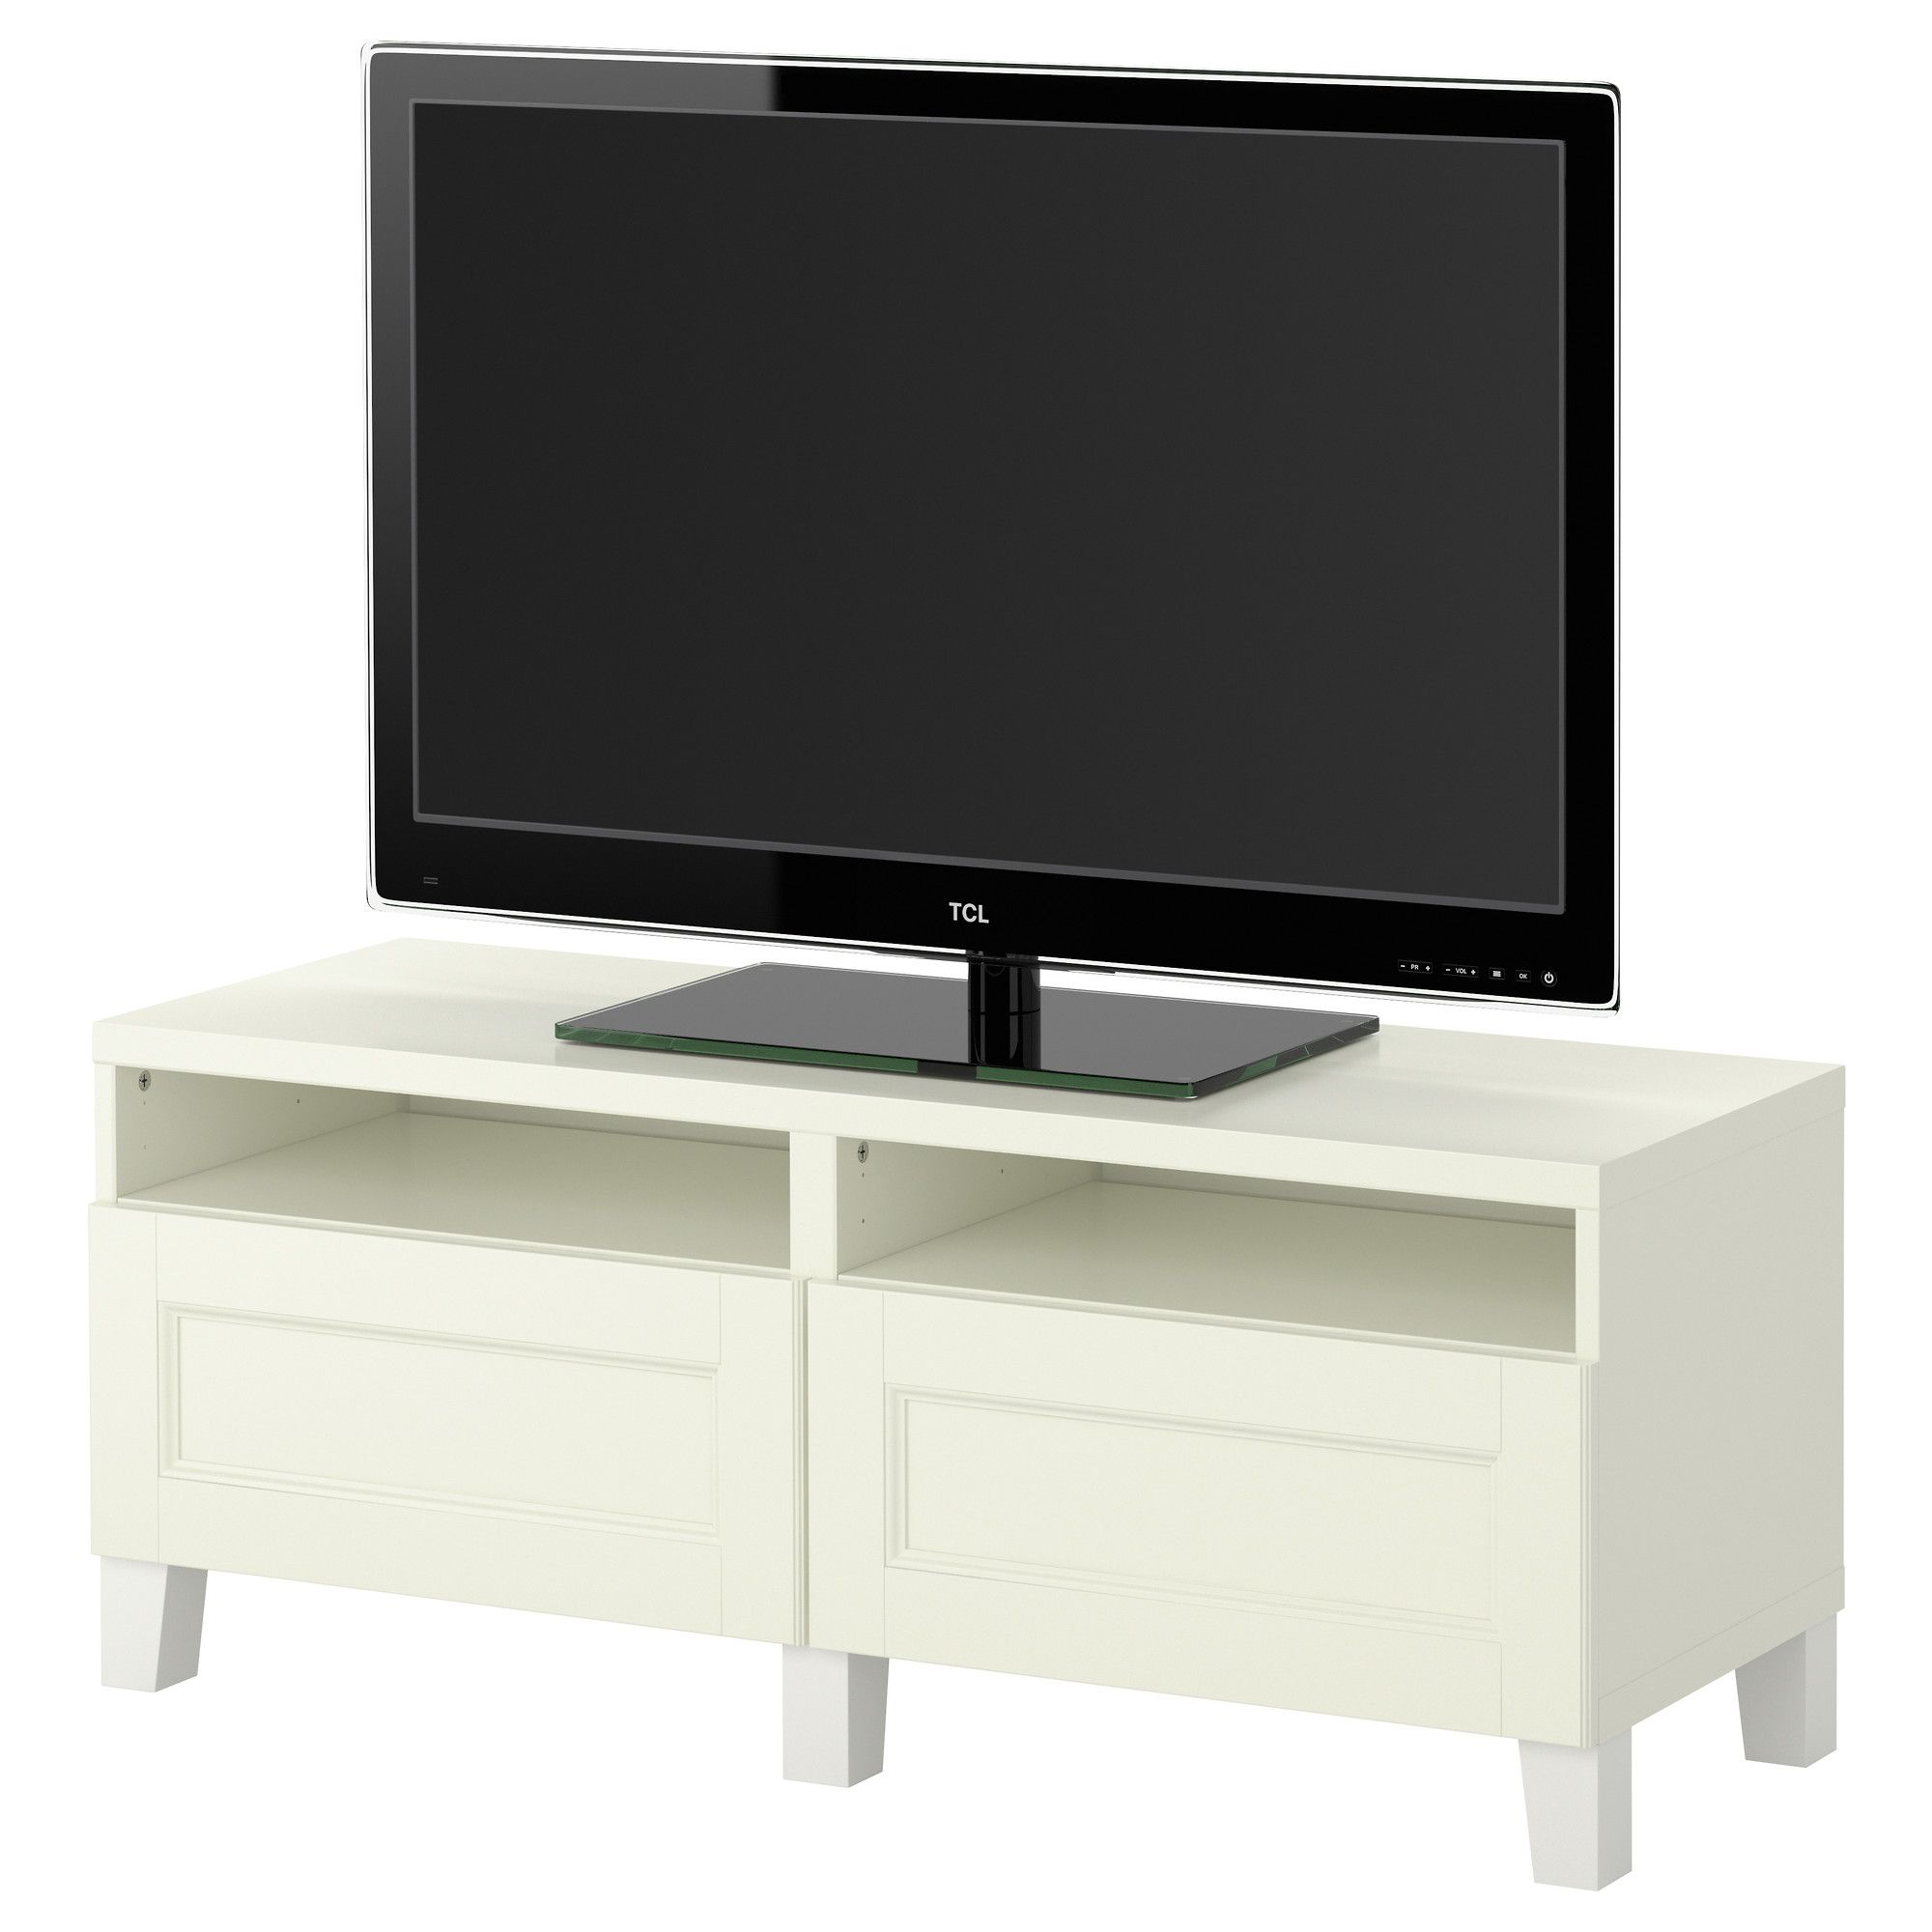 Mueble Tv Ikea Segunda Mano BestÅ Tv Bench With Drawers Ikea Décor Pinterest